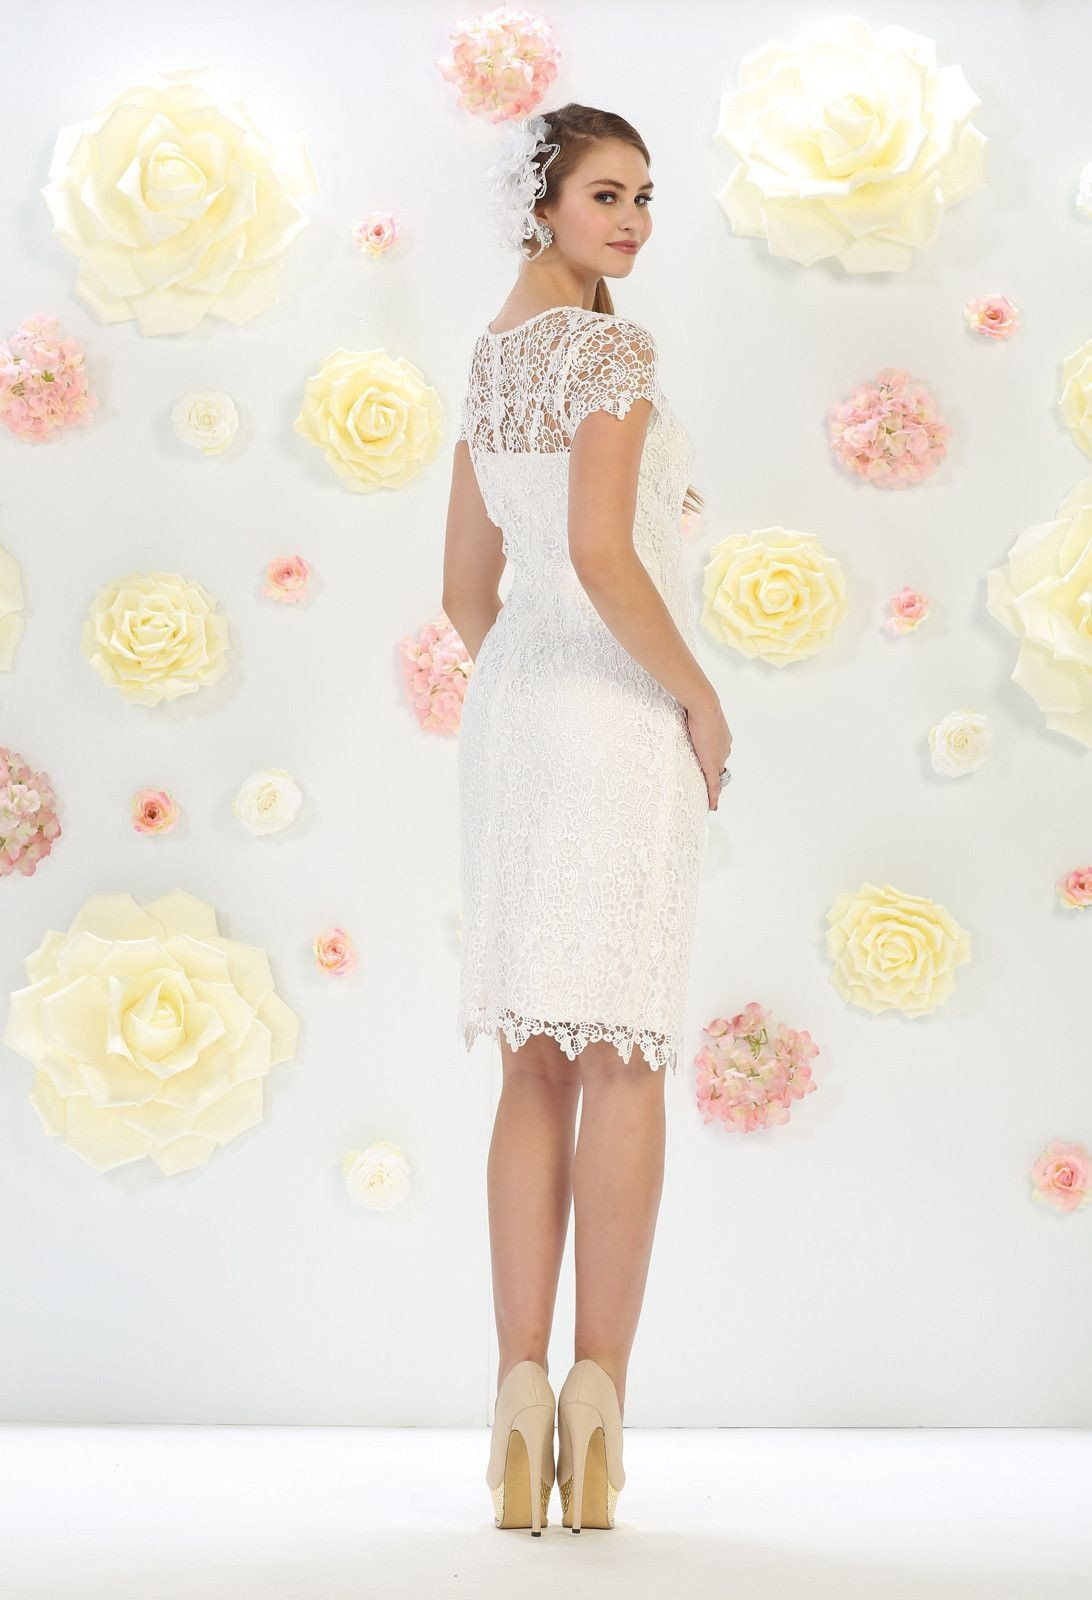 b6932f37f Short Cocktail Mother of the Bride Dress | dresses | Bride party ...